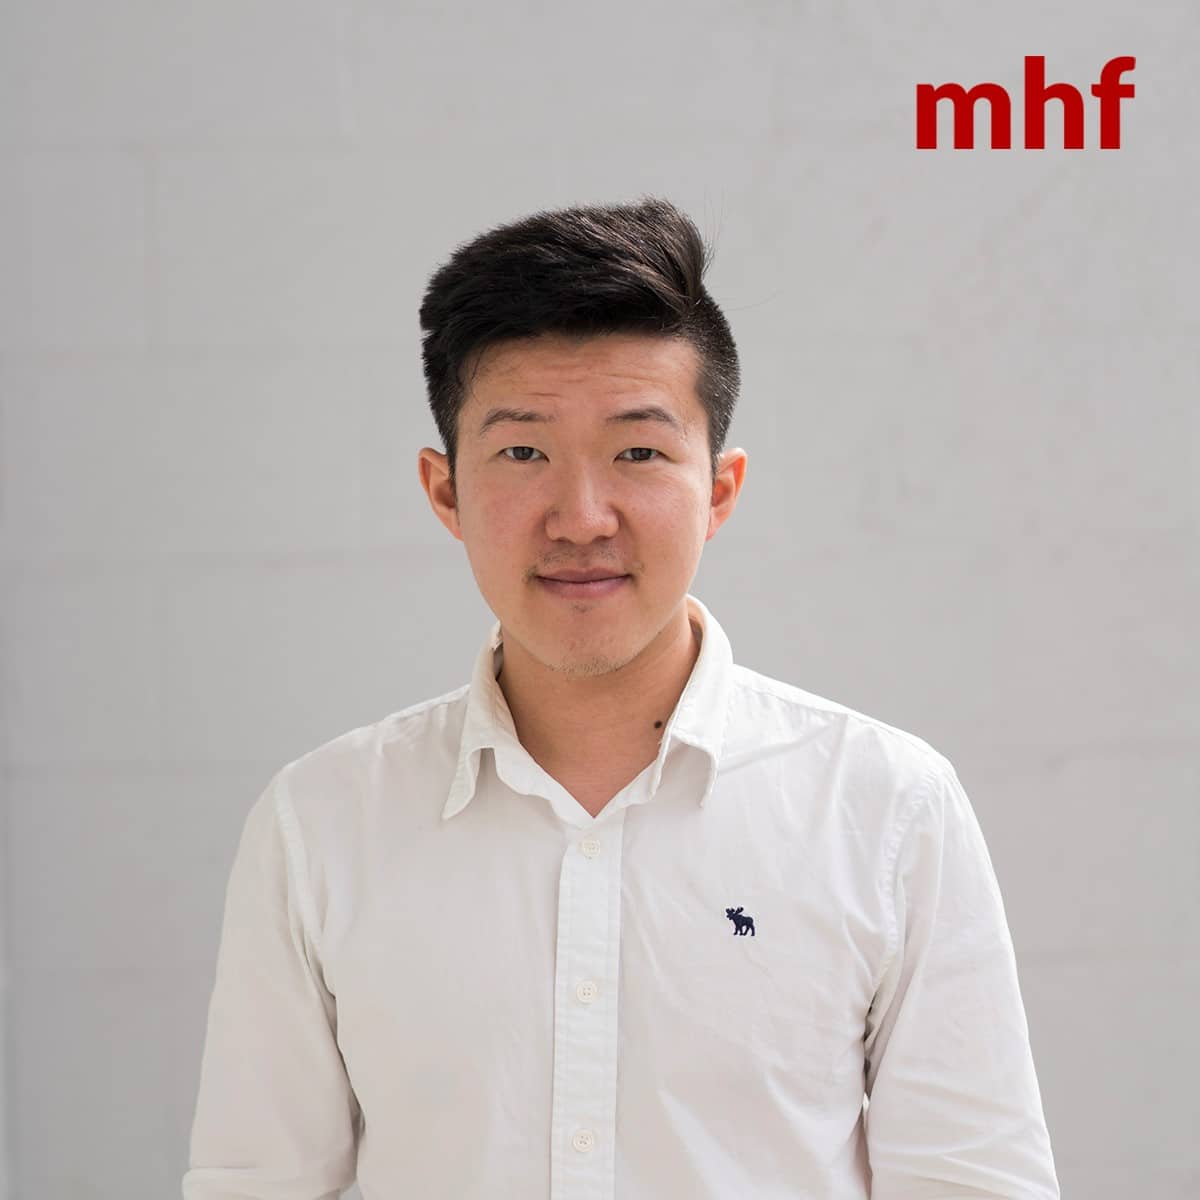 MHF Finance Kenny Lao Finance Marketing Manager